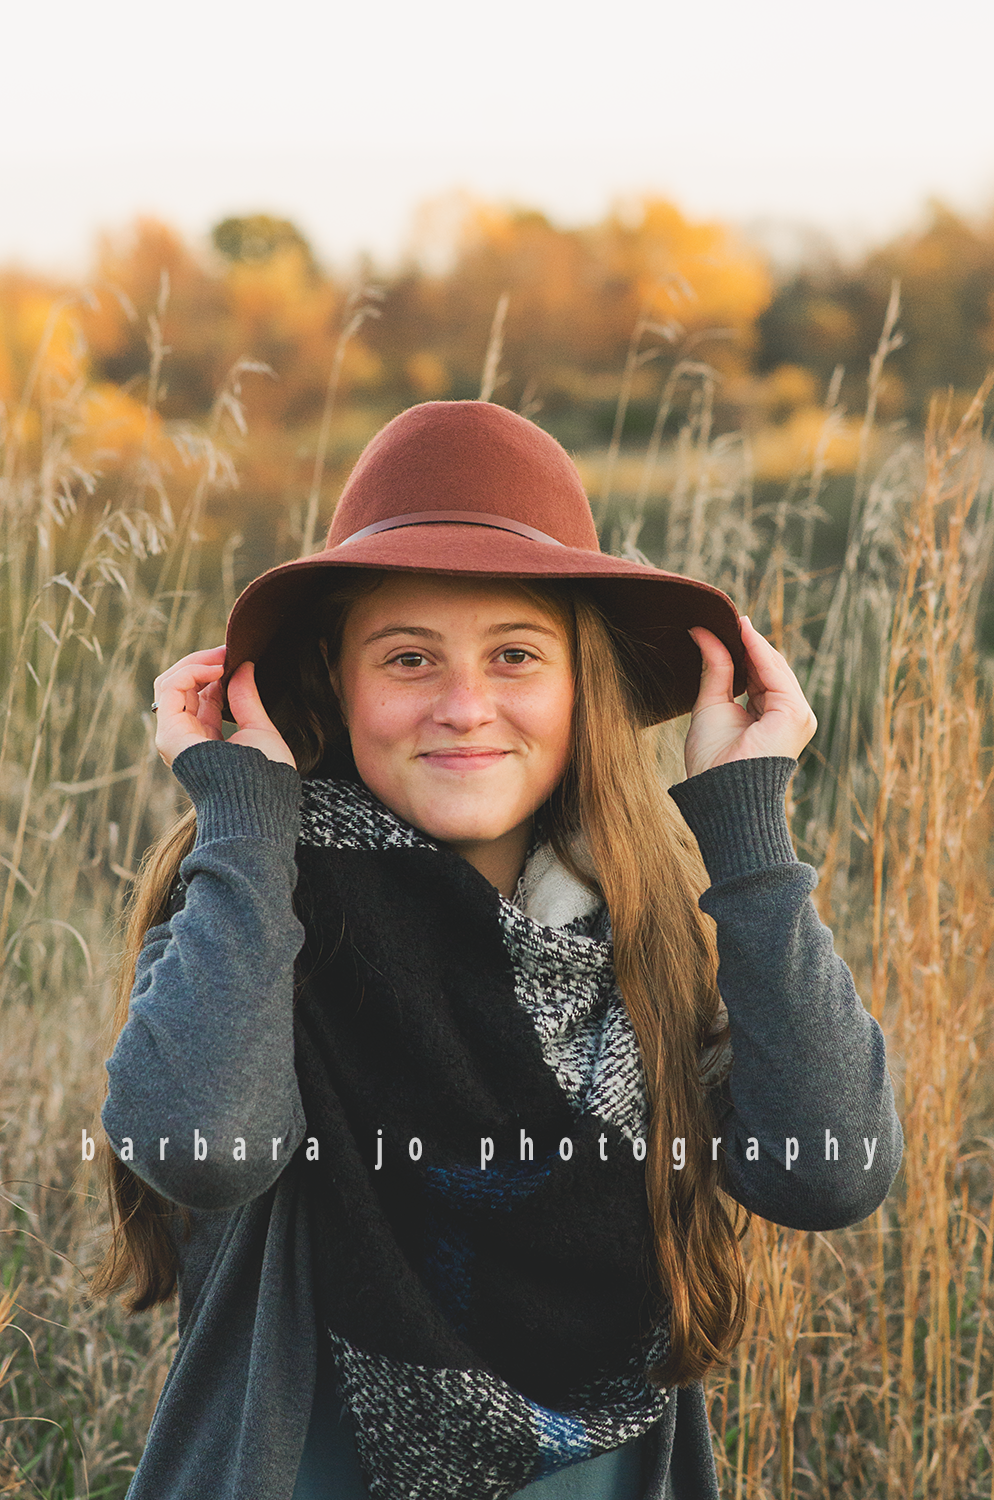 bjp-senior-pictures-portraits-class-of-2018-dover-oh-fall-autumn-woods-graduate-abby14.png